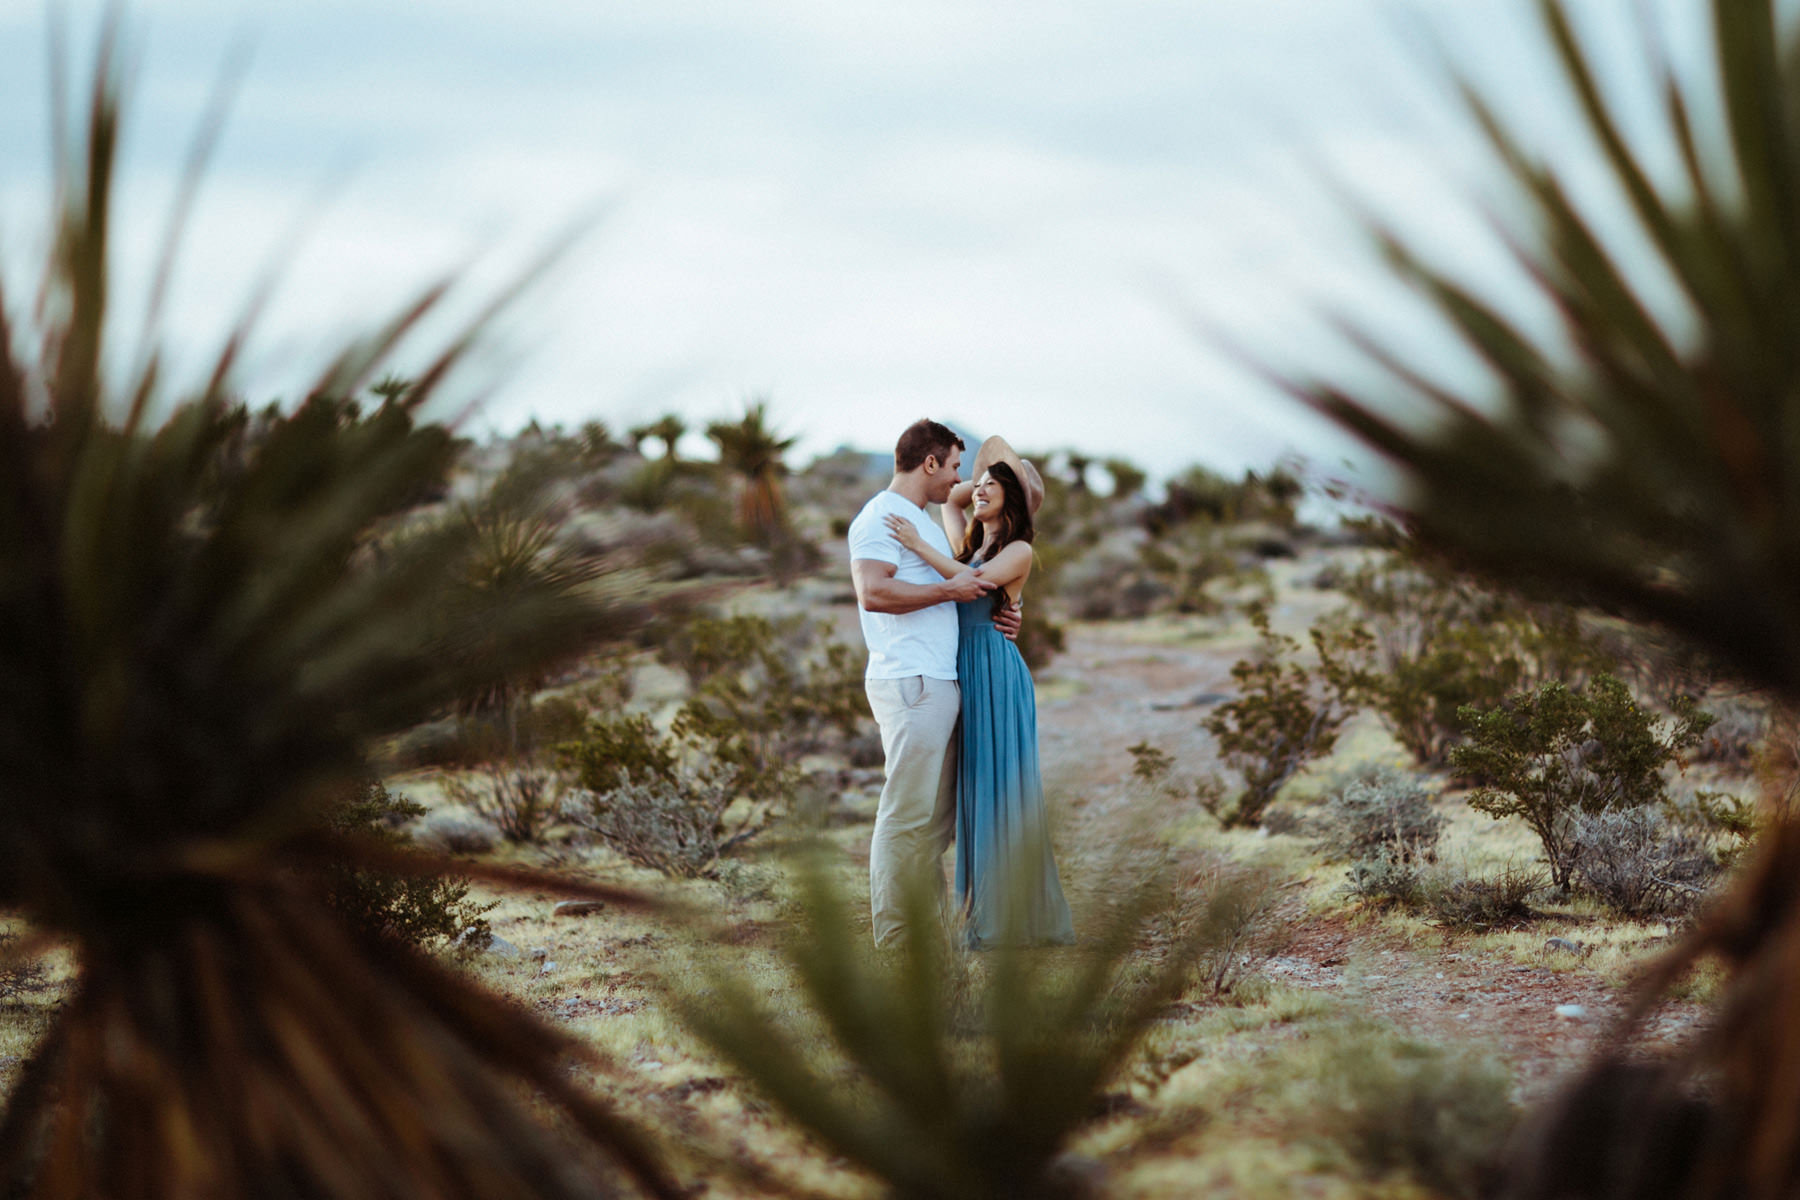 181_Red Rock Canyon Desert Engagement Session Las Vegas, Nevada_Kindling Wedding Photography.JPG